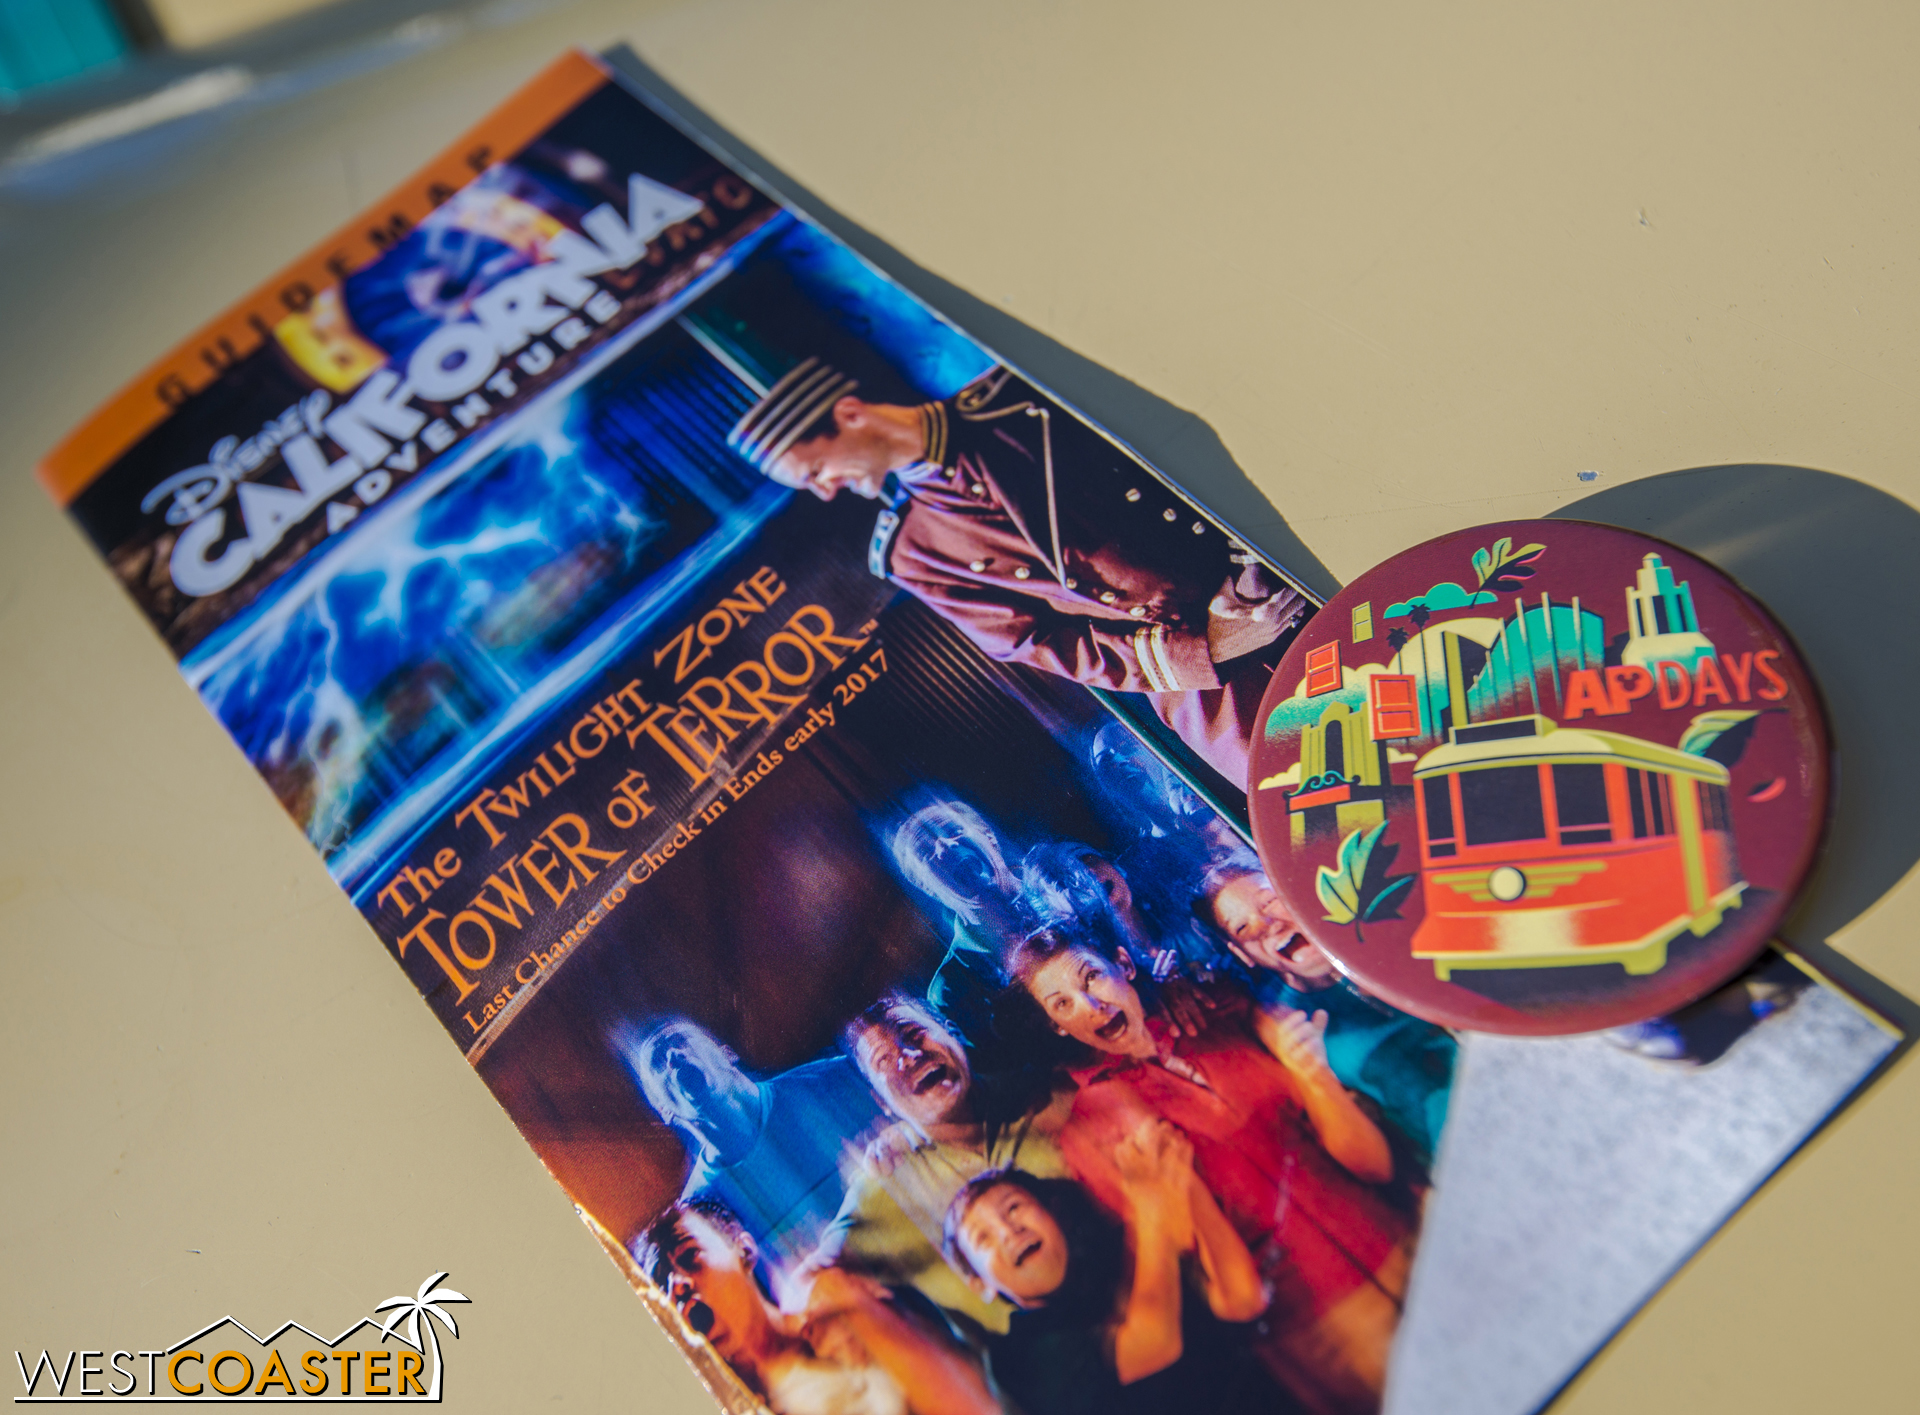 Also, the new DCA map features Tower of Terror (and actually a pretty cool photo).